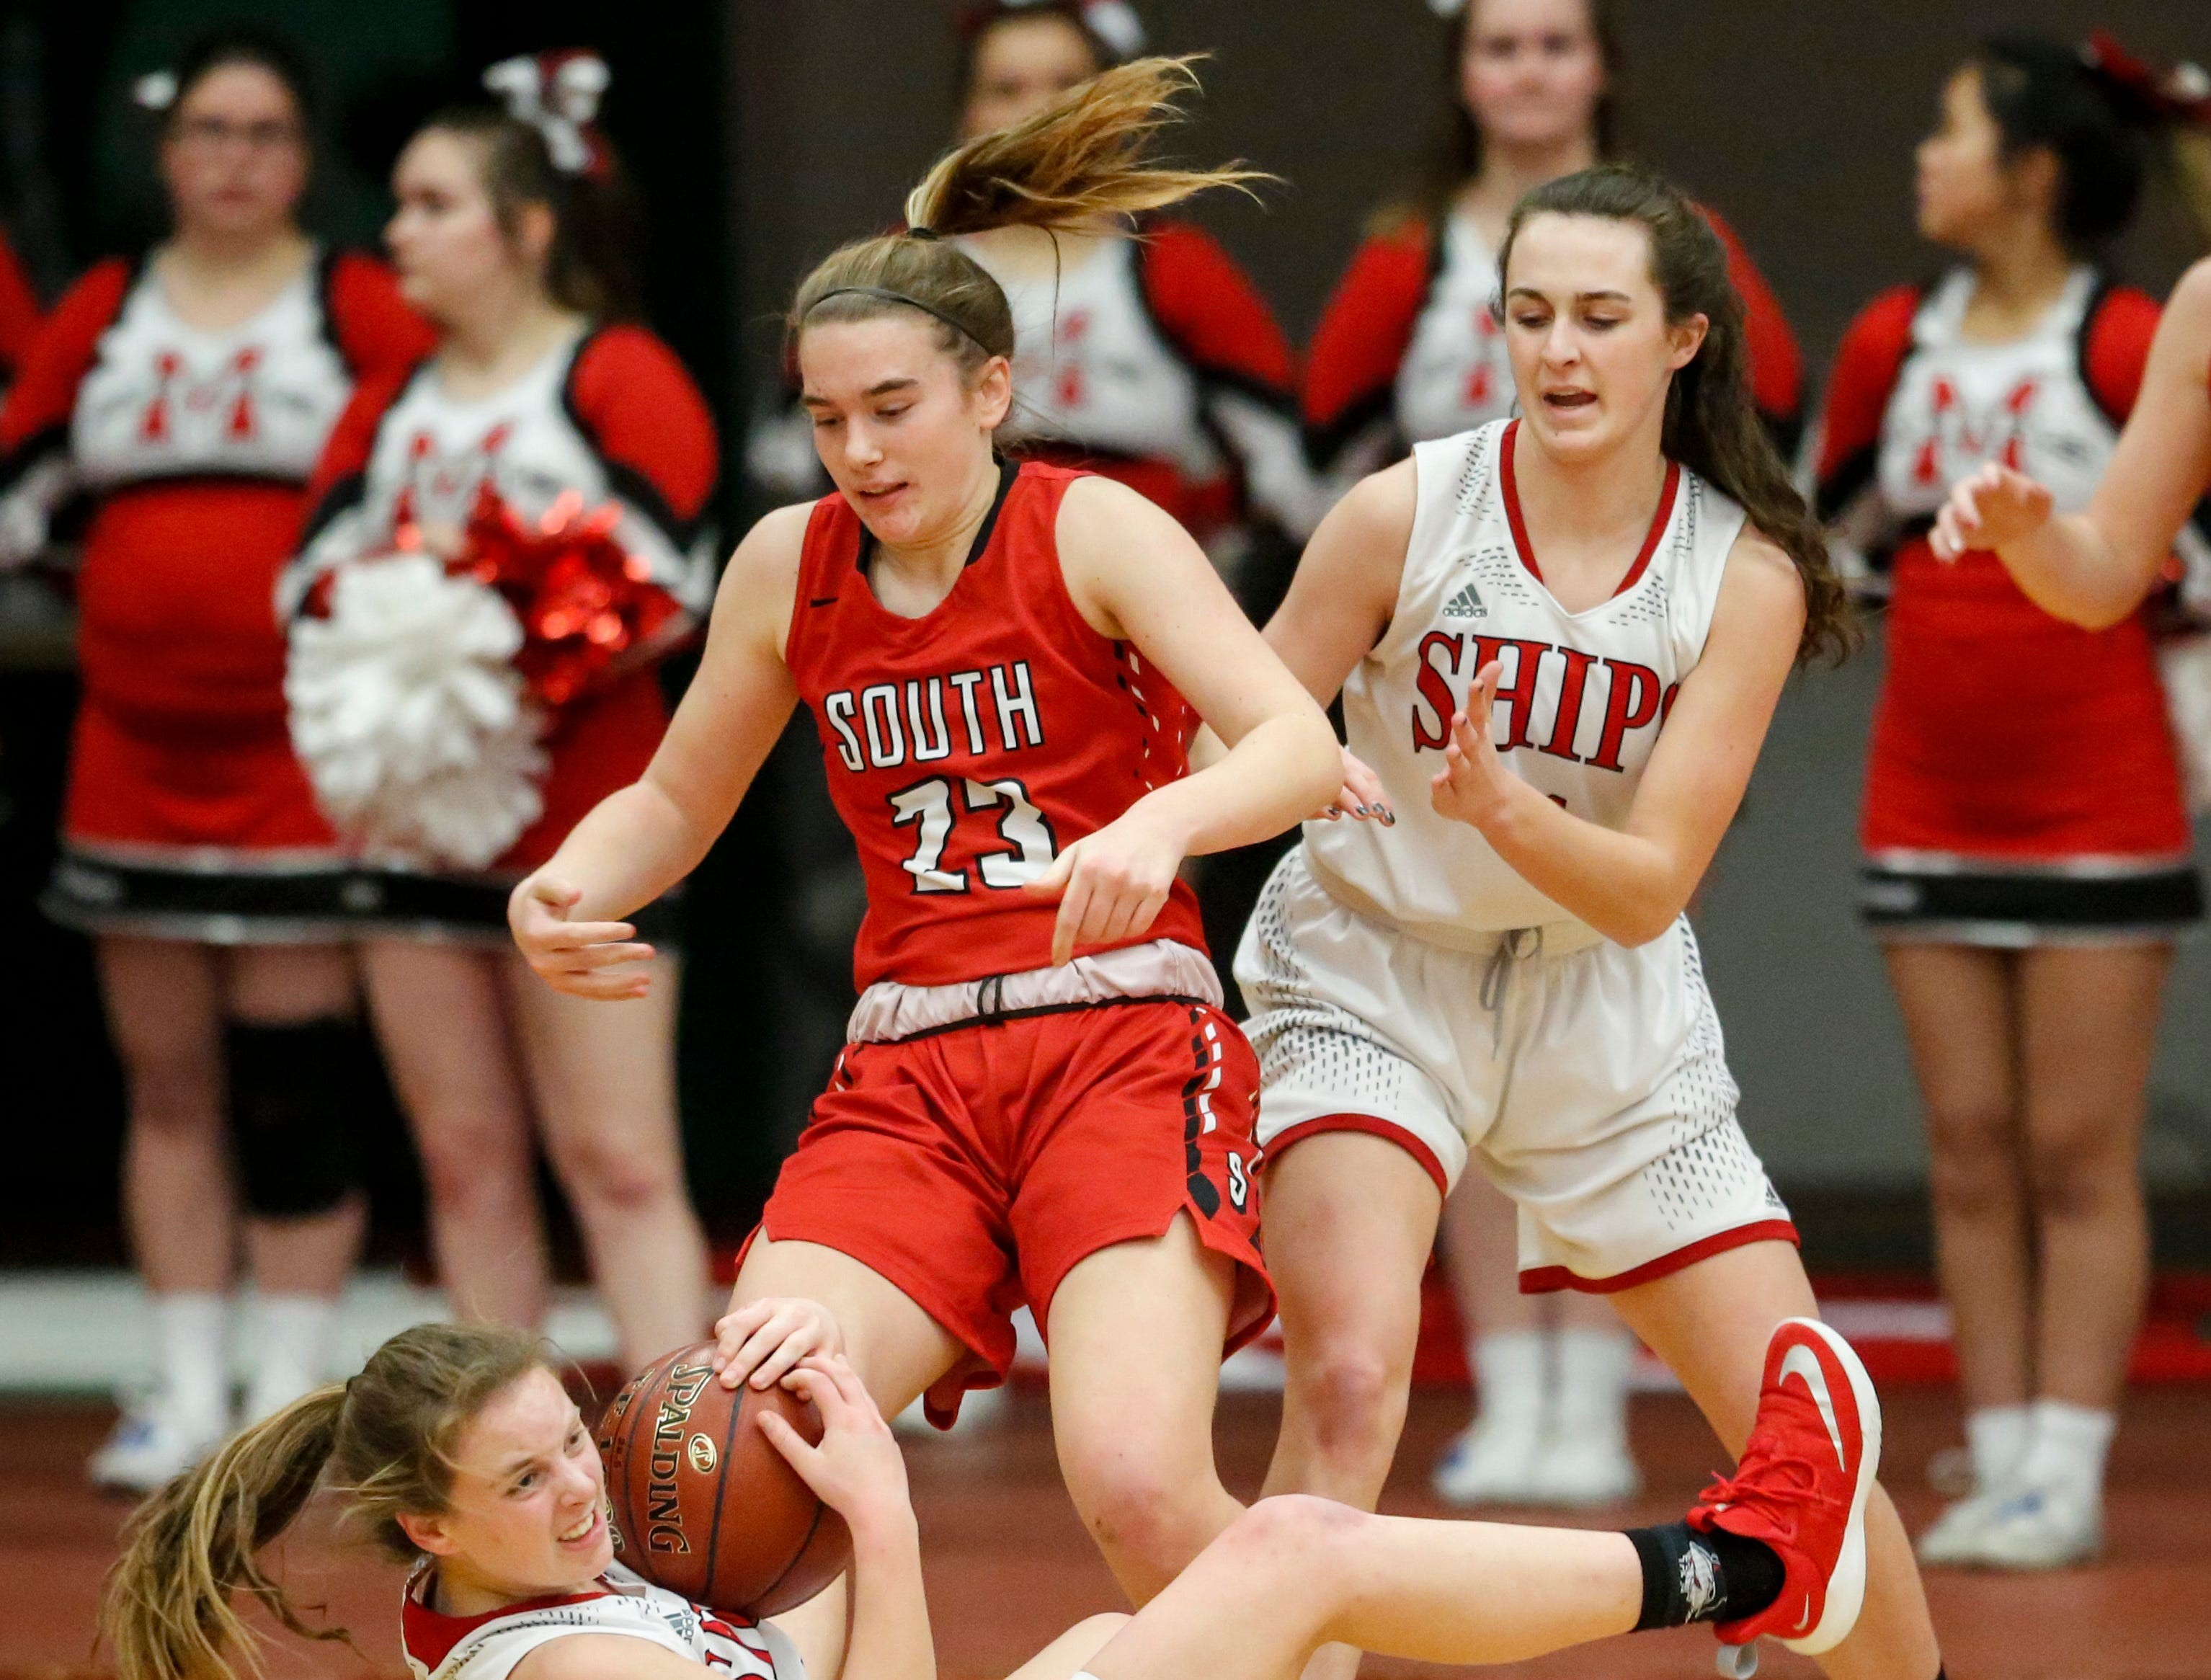 Manitowoc Lincoln's Shae Luer (15) dives for a loose ball after knocking it away from Sheboygan South's Halle Boldt (23) during an FRCC matchup at Manitowoc Lincoln High School Friday, January 4, 2019, in Manitowoc, Wis. Joshua Clark/USA TODAY NETWORK-Wisconsin